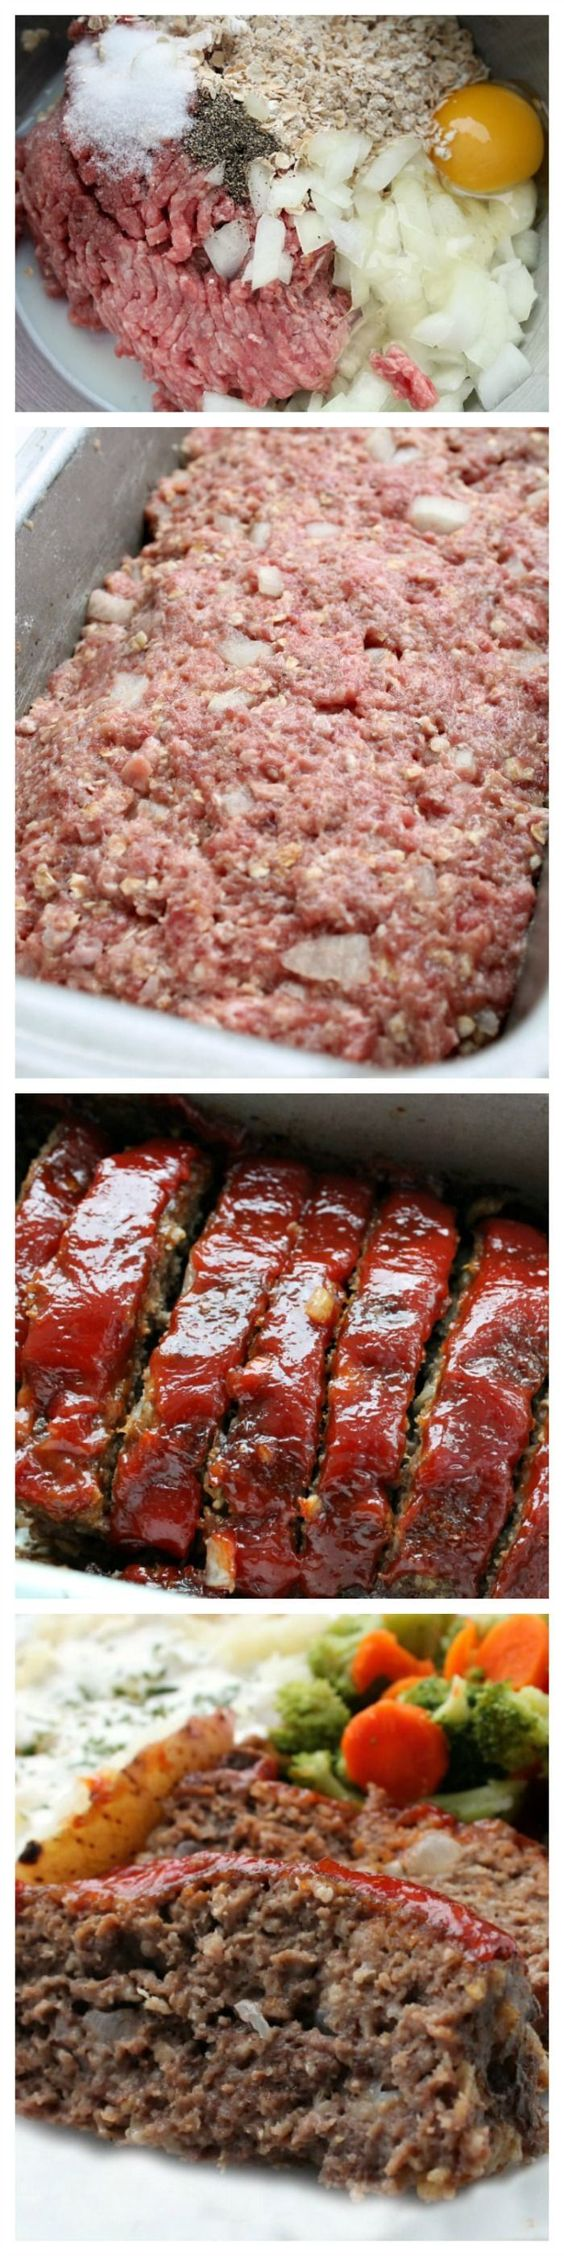 Meatloaf recipes, Classic meatloaf recipe and Classic on Pinterest